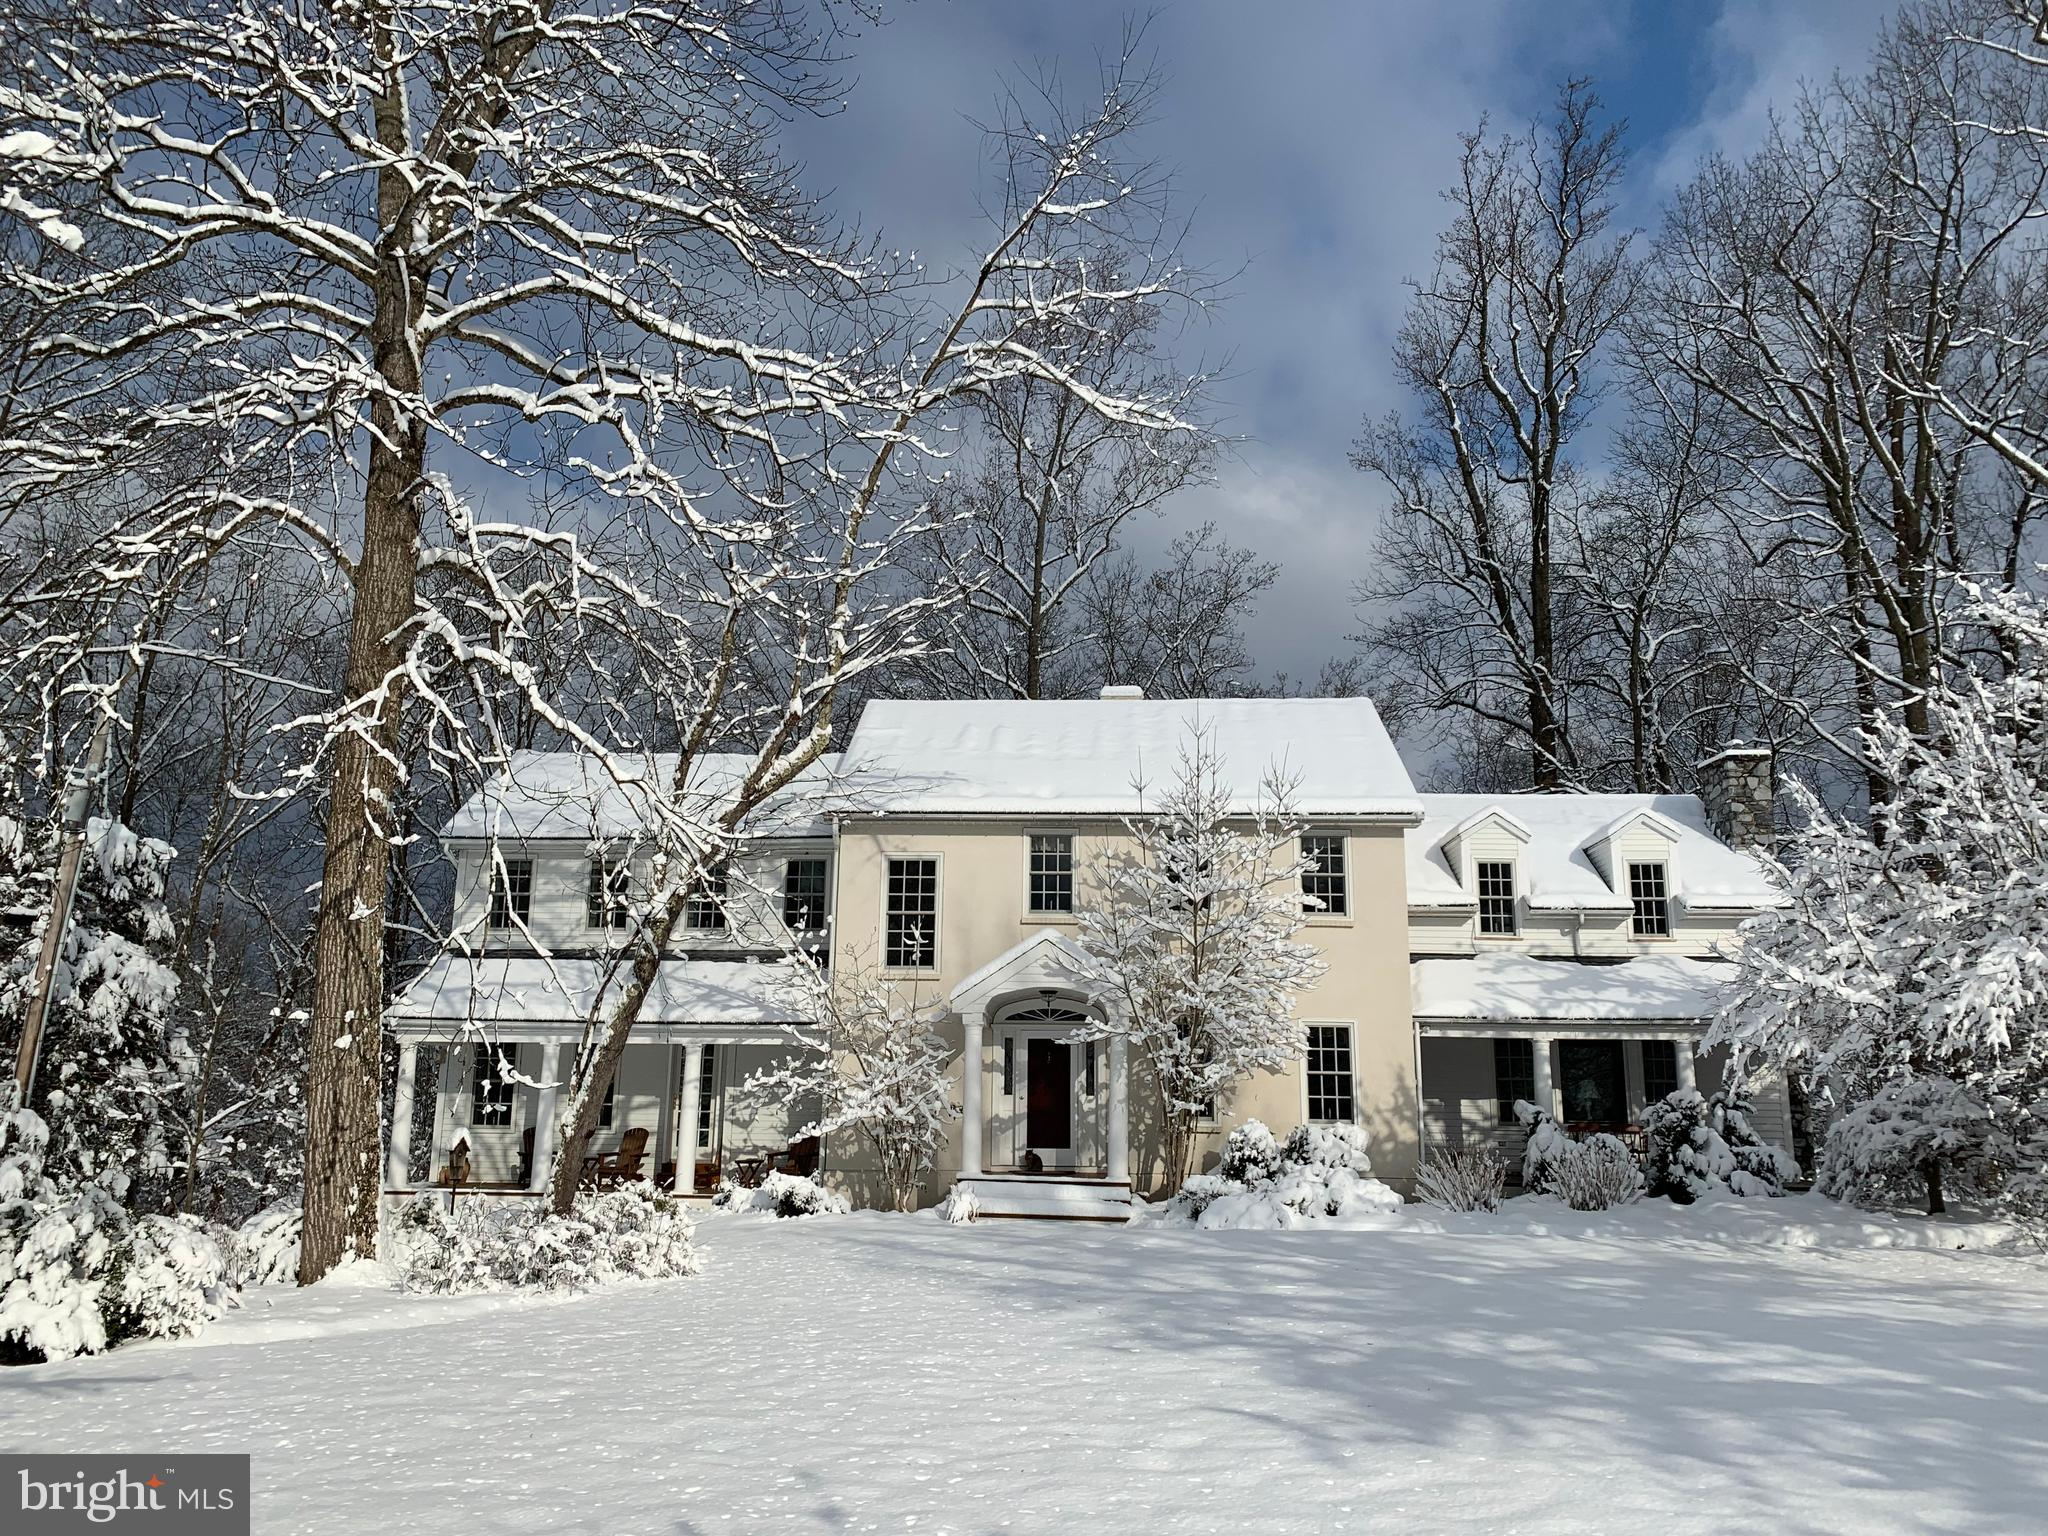 2455 ROSSTOWN ROAD, WELLSVILLE, PA 17365